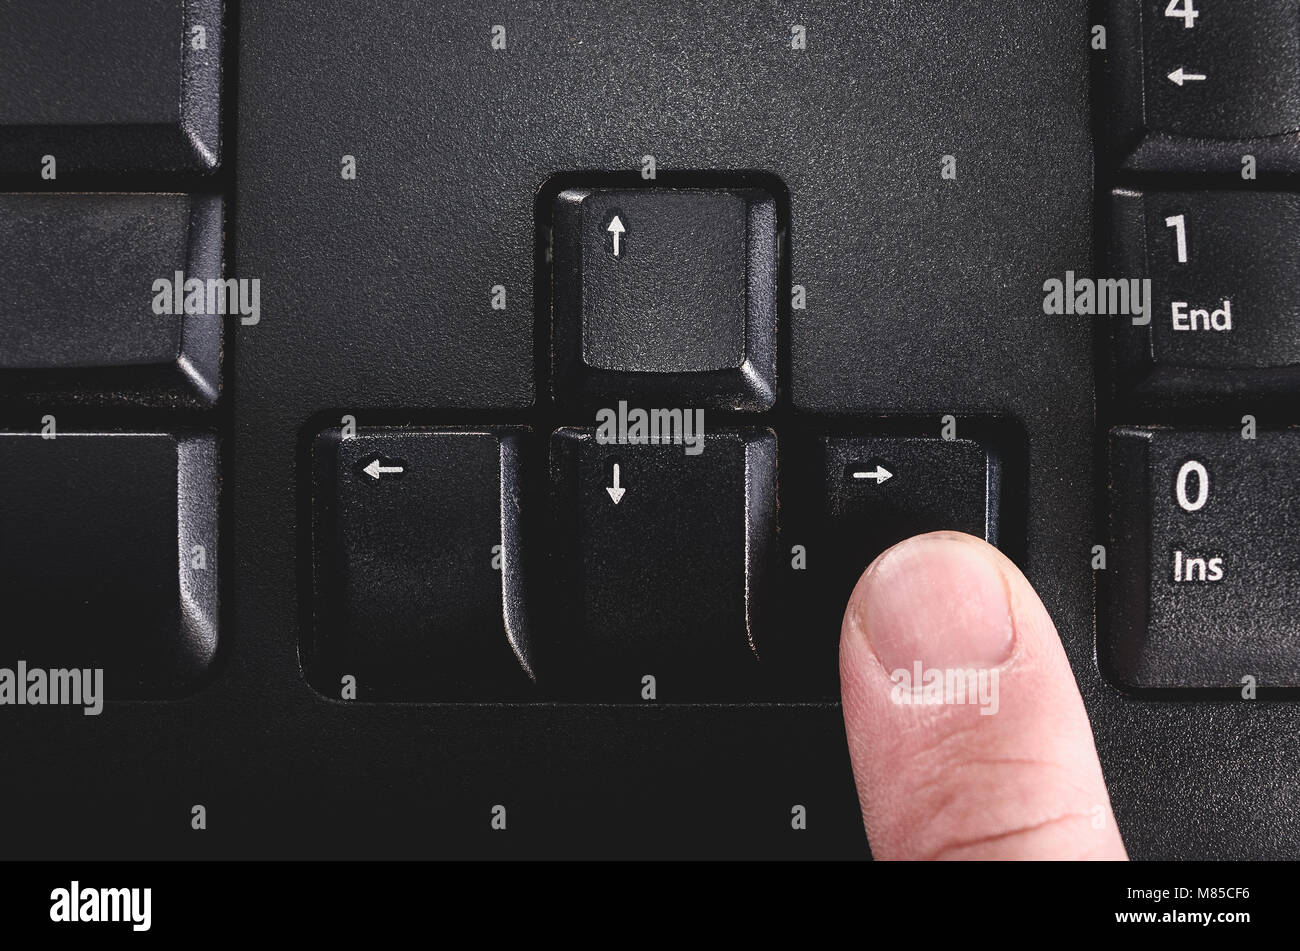 Human finger pressing the directional right key from a black keyboard. - Stock Image